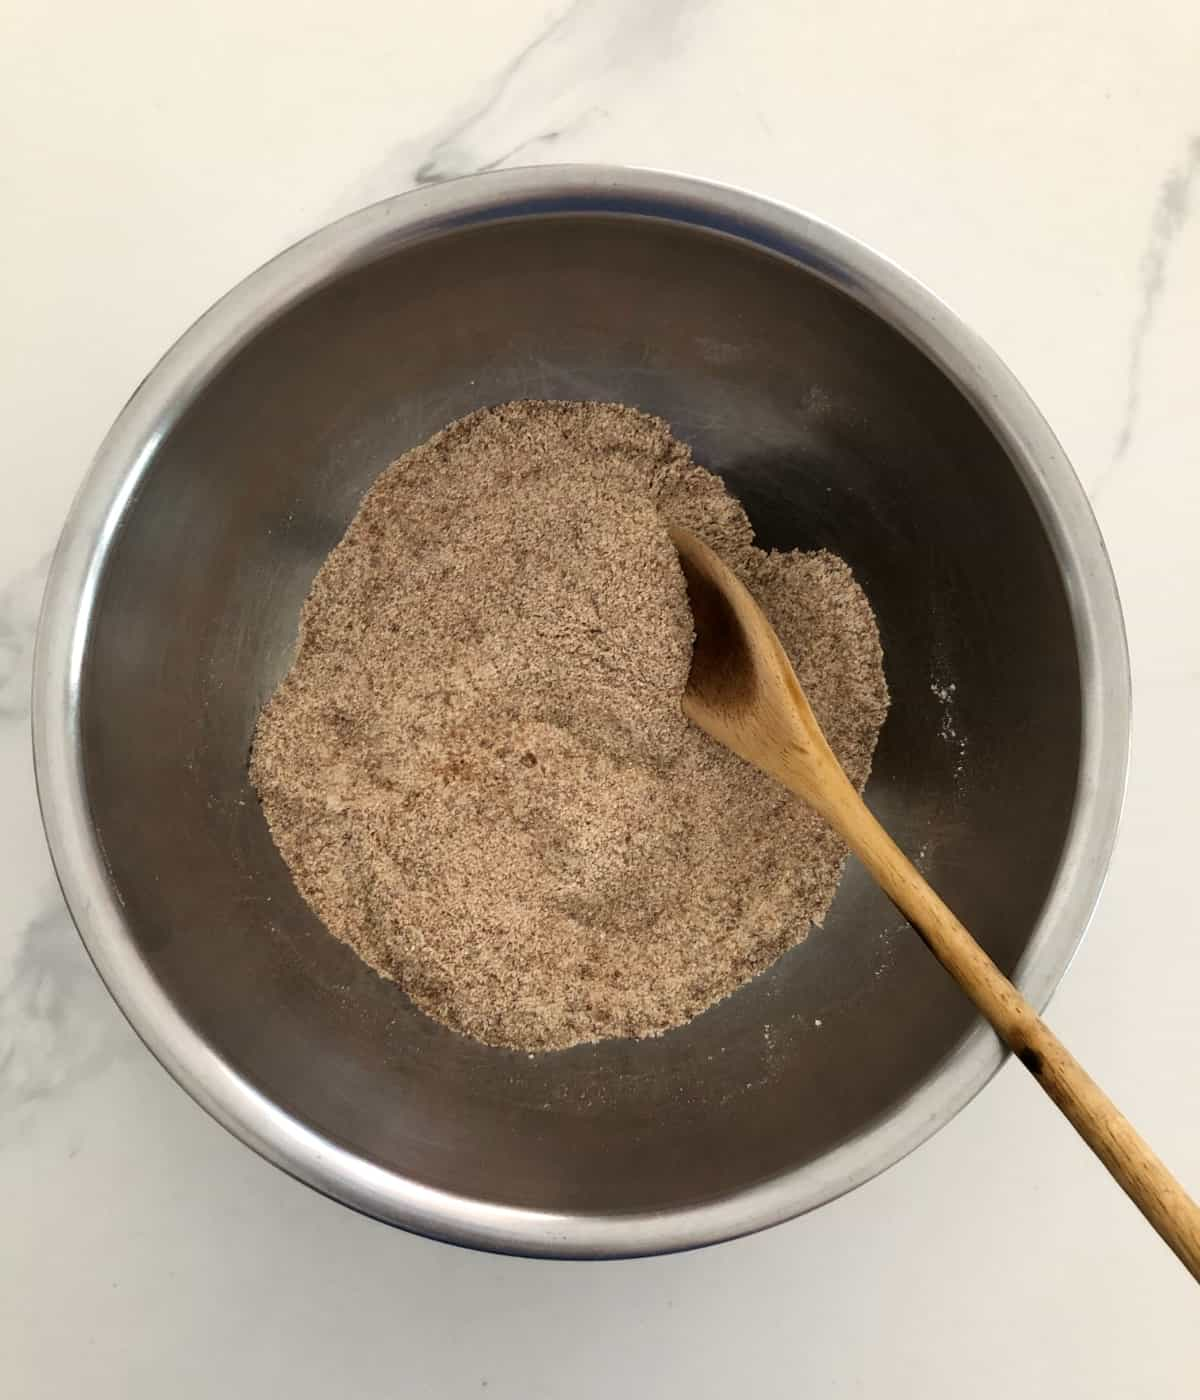 Stirring flour, sugar, salt and cinnamon in mixing bowl with wooden spoon.